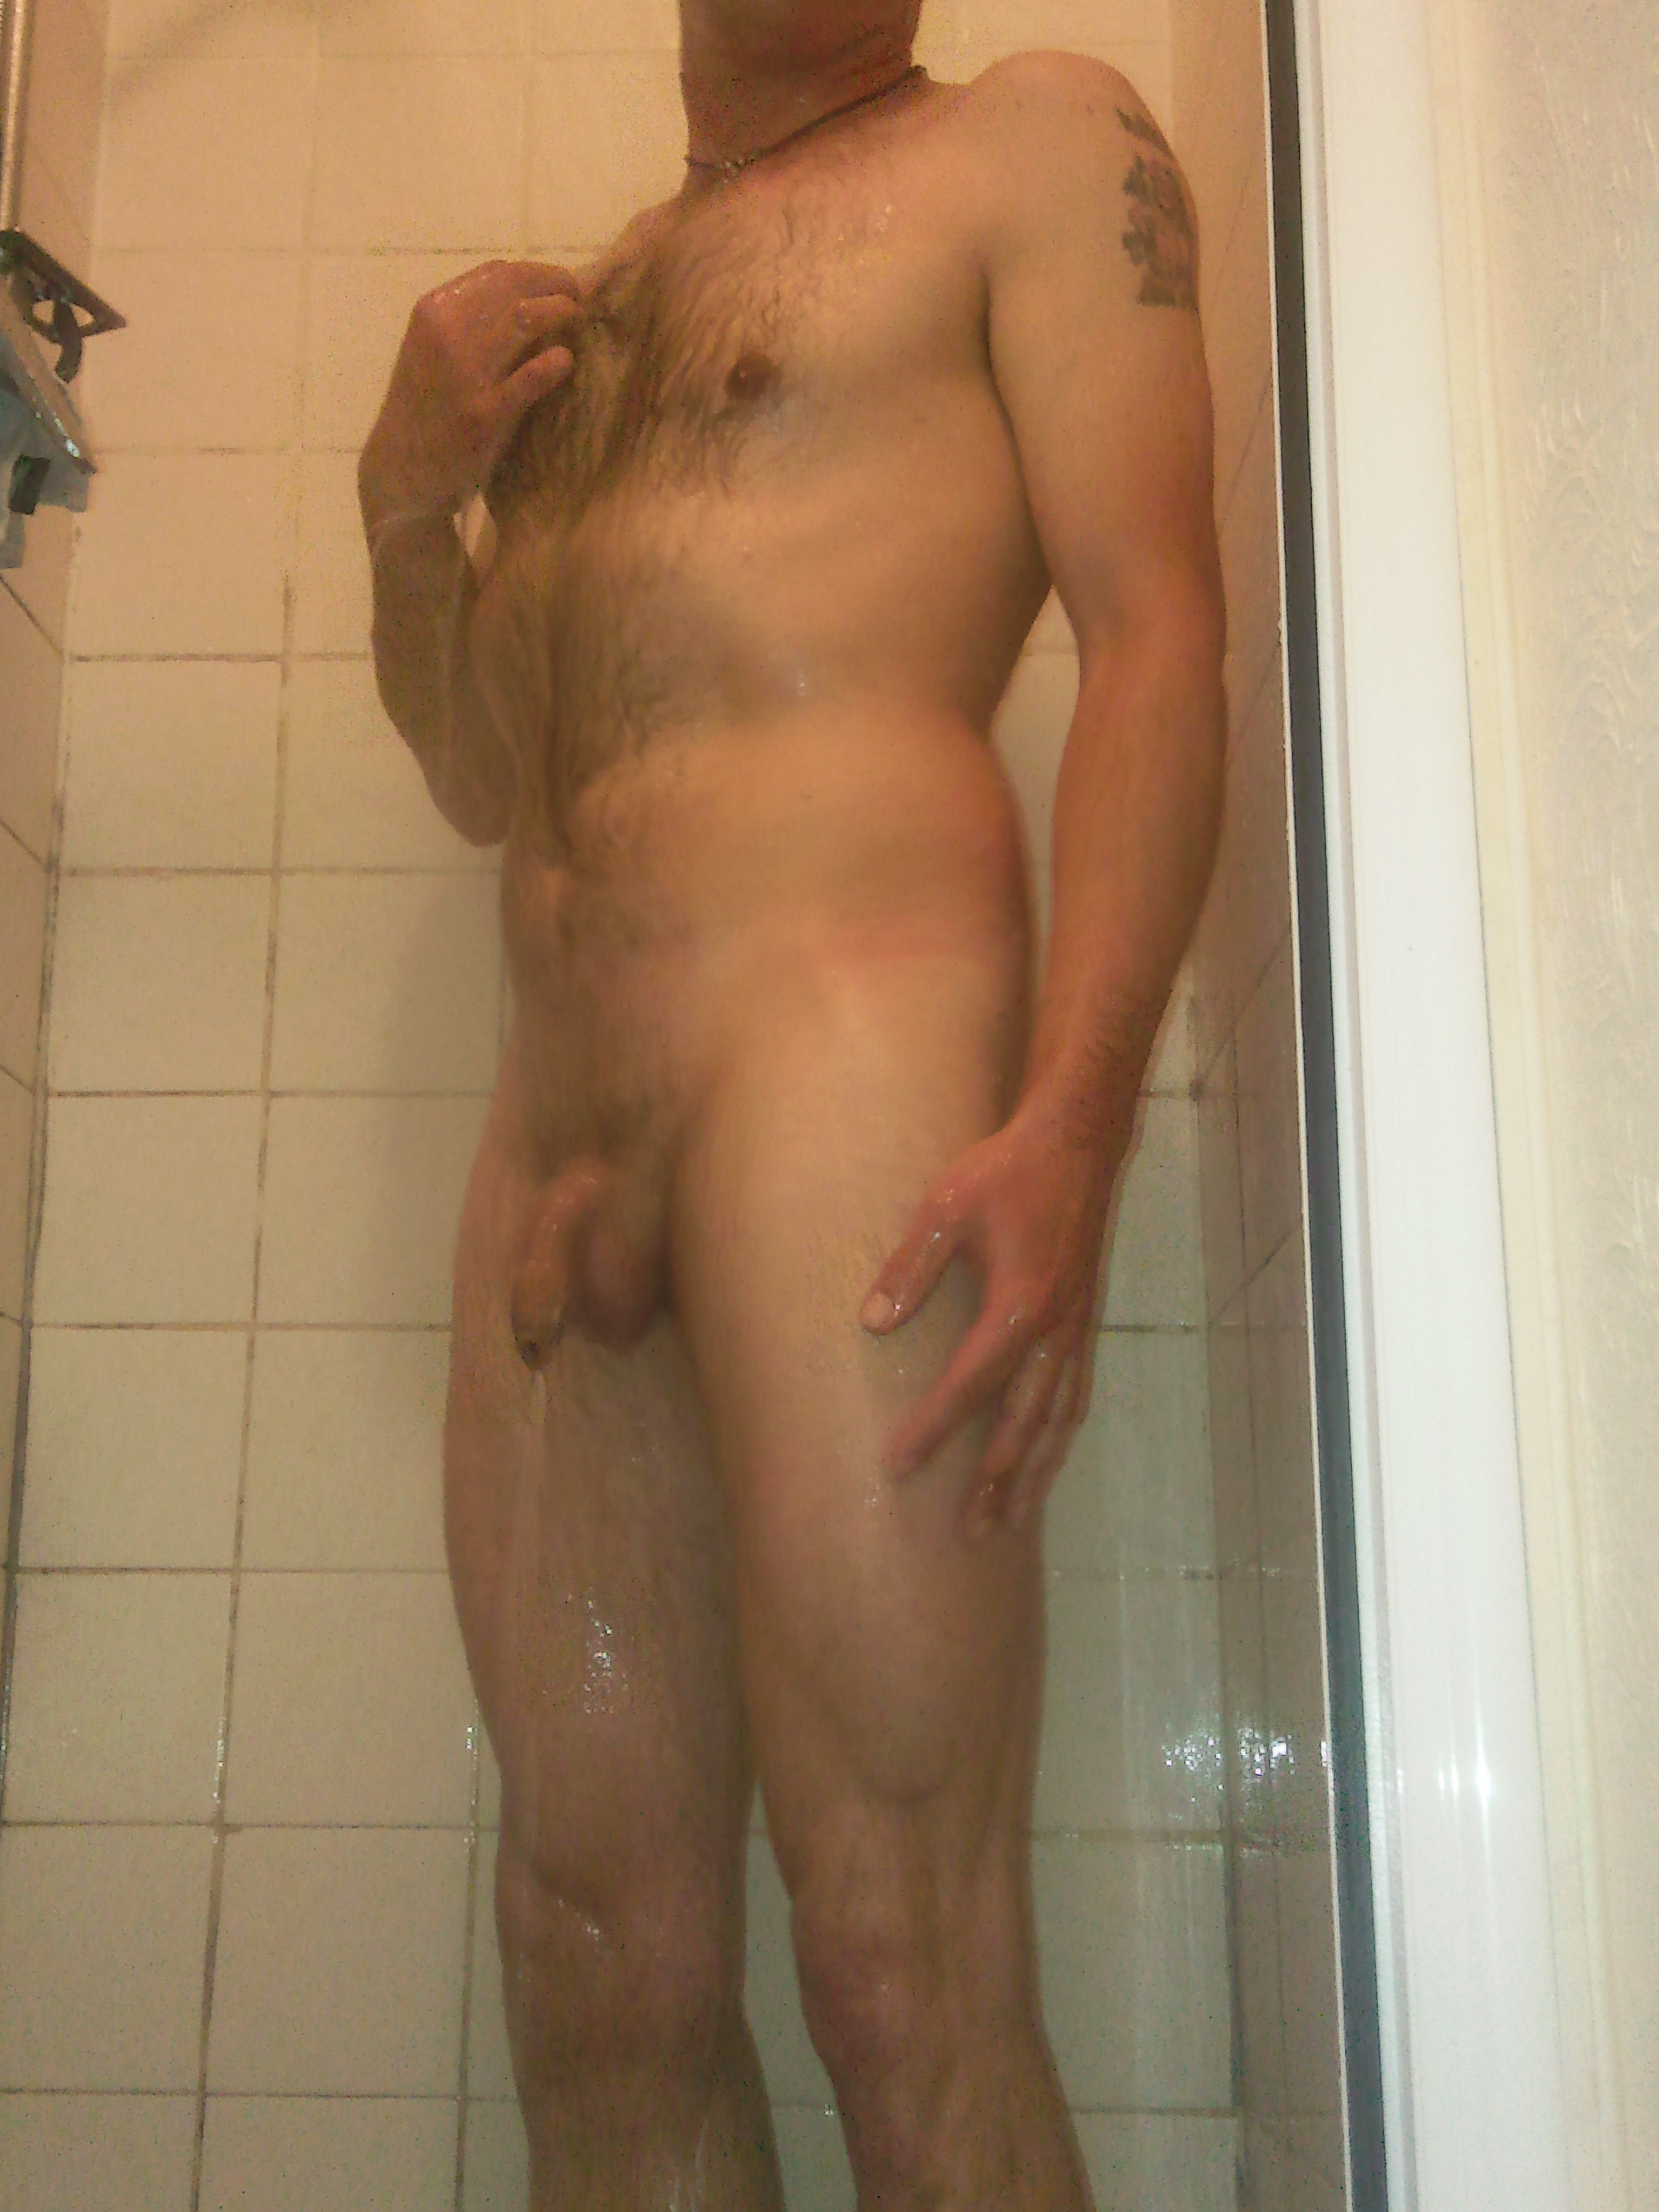 Having a cold shower